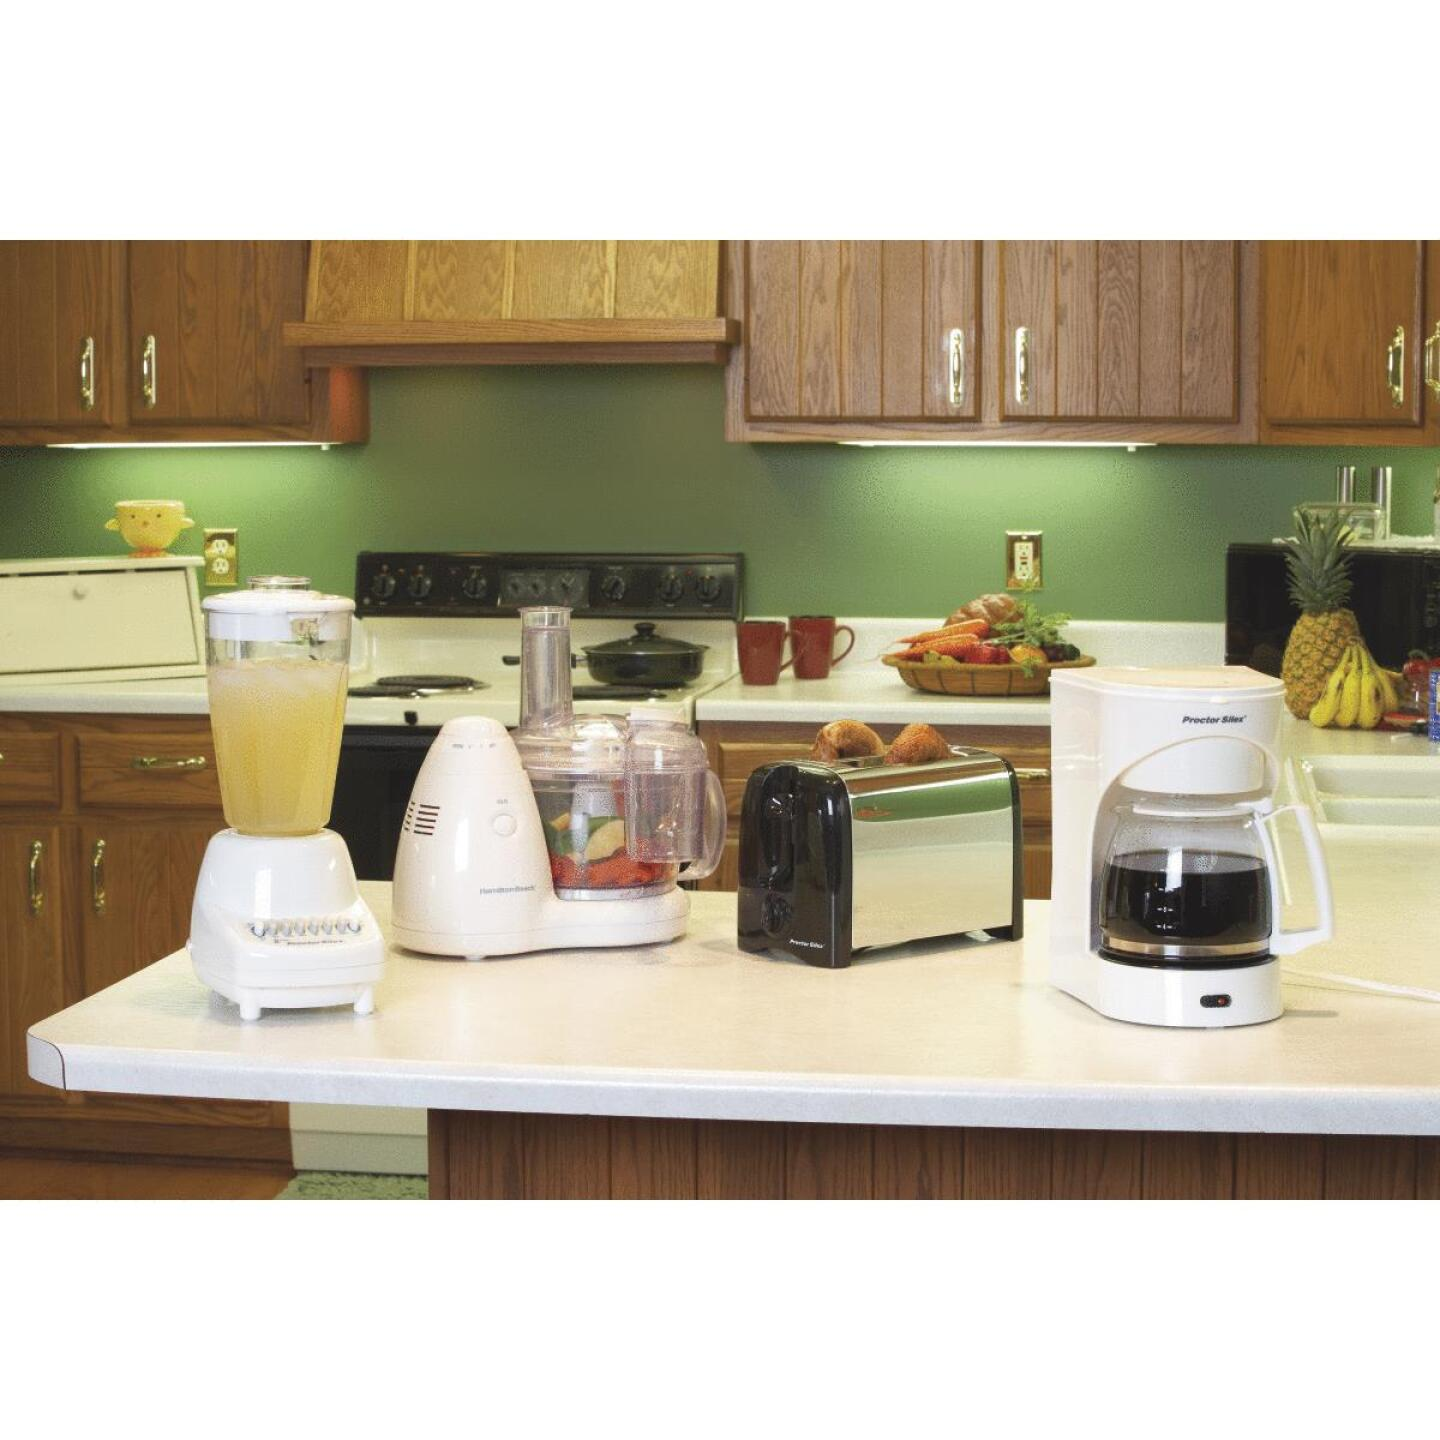 Proctor-Silex 12 Cup White Coffee Maker Image 3